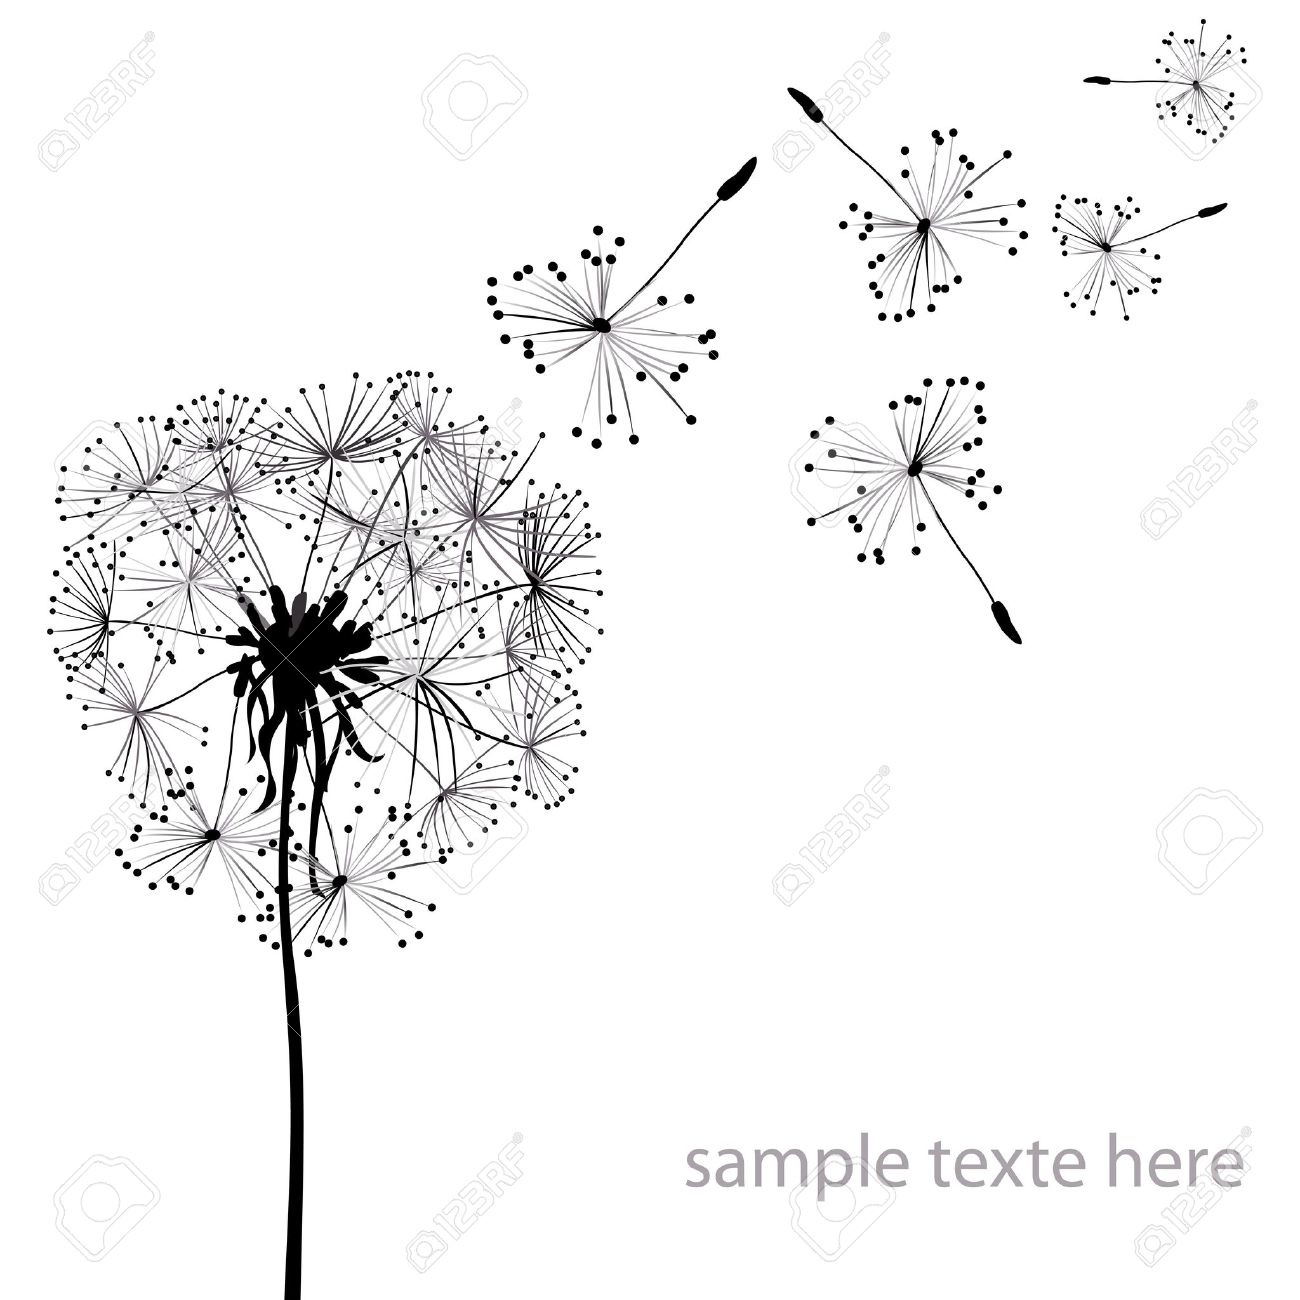 two dandelions in wind on light blue background Stock Photo - 4384971